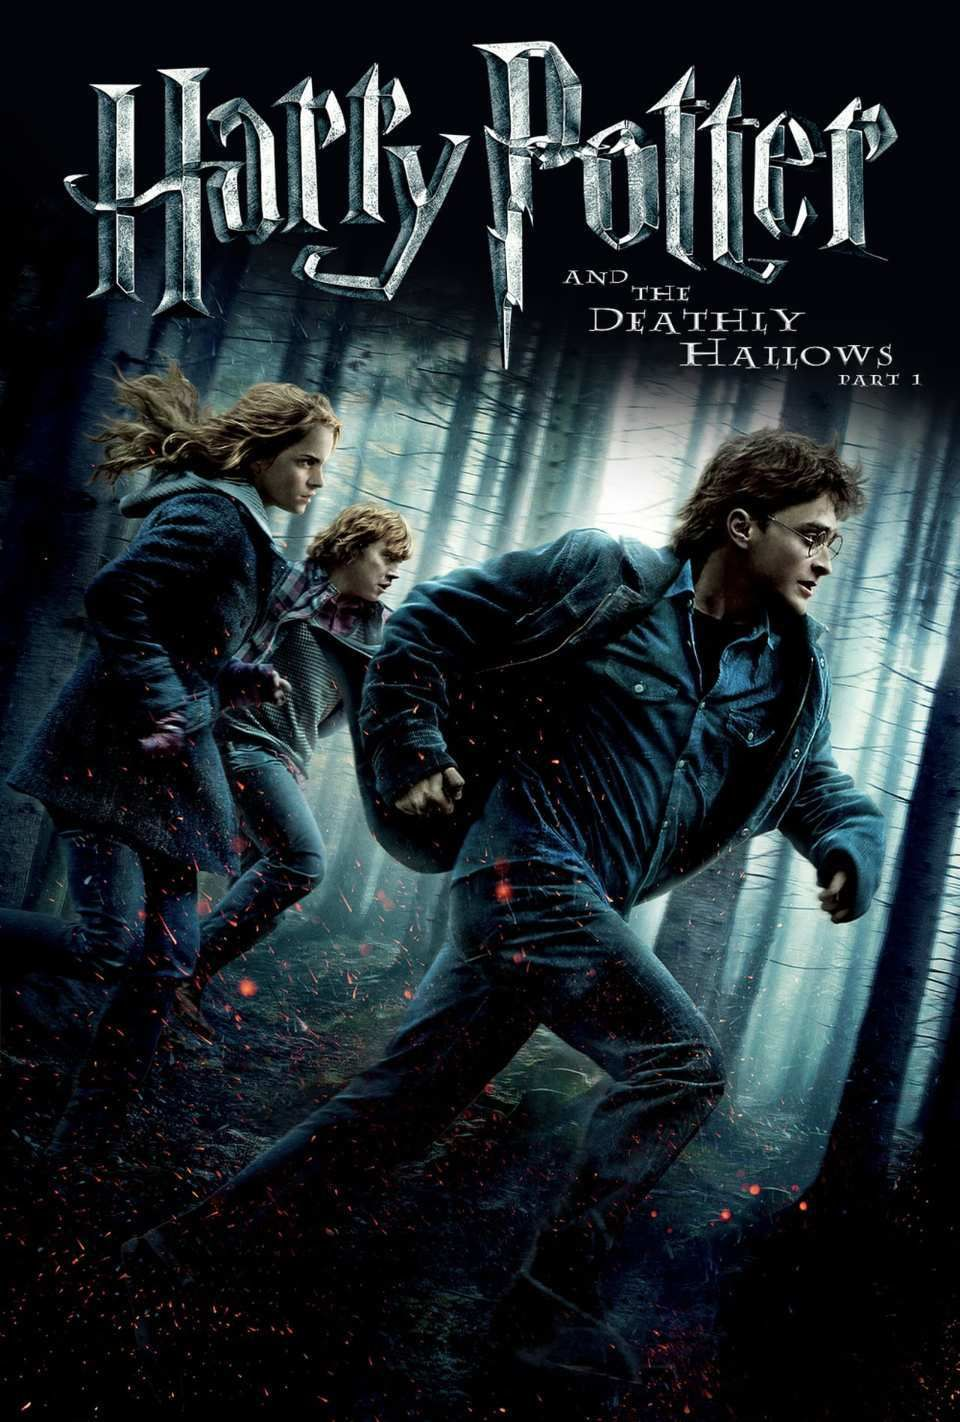 Read The Harry Potter And The Deathly Hallows Part 1 2010 Script Written By Steve Kloves And J K Rowling In 2020 Harry Potter Movies Harry Potter Dvd Harry Potter